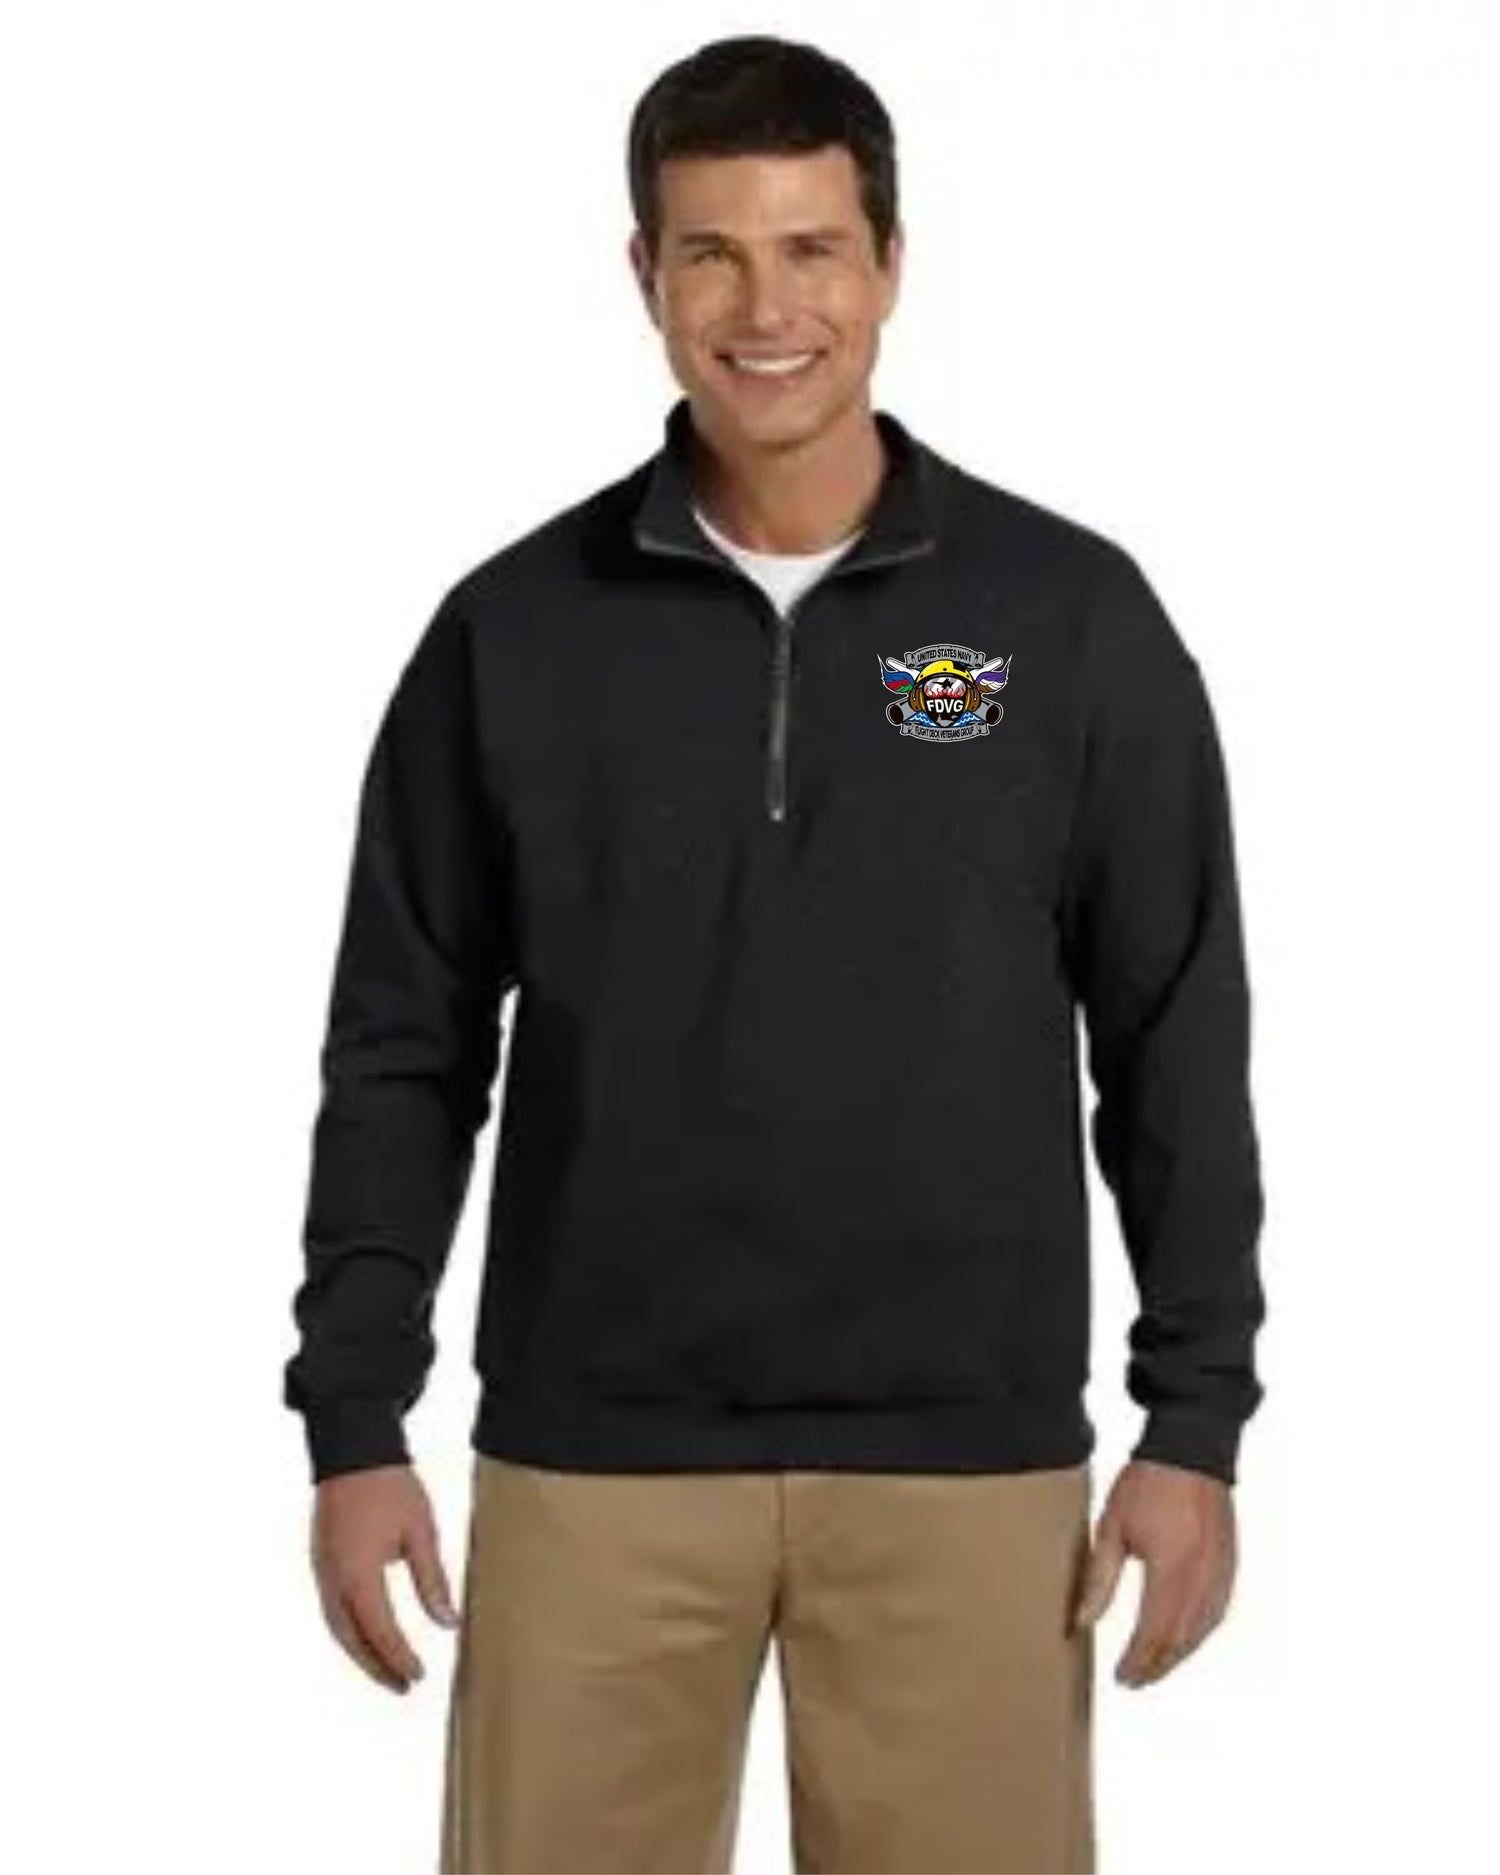 Image of Black Quarter-Zip Sweatshirt with Cadet Collar